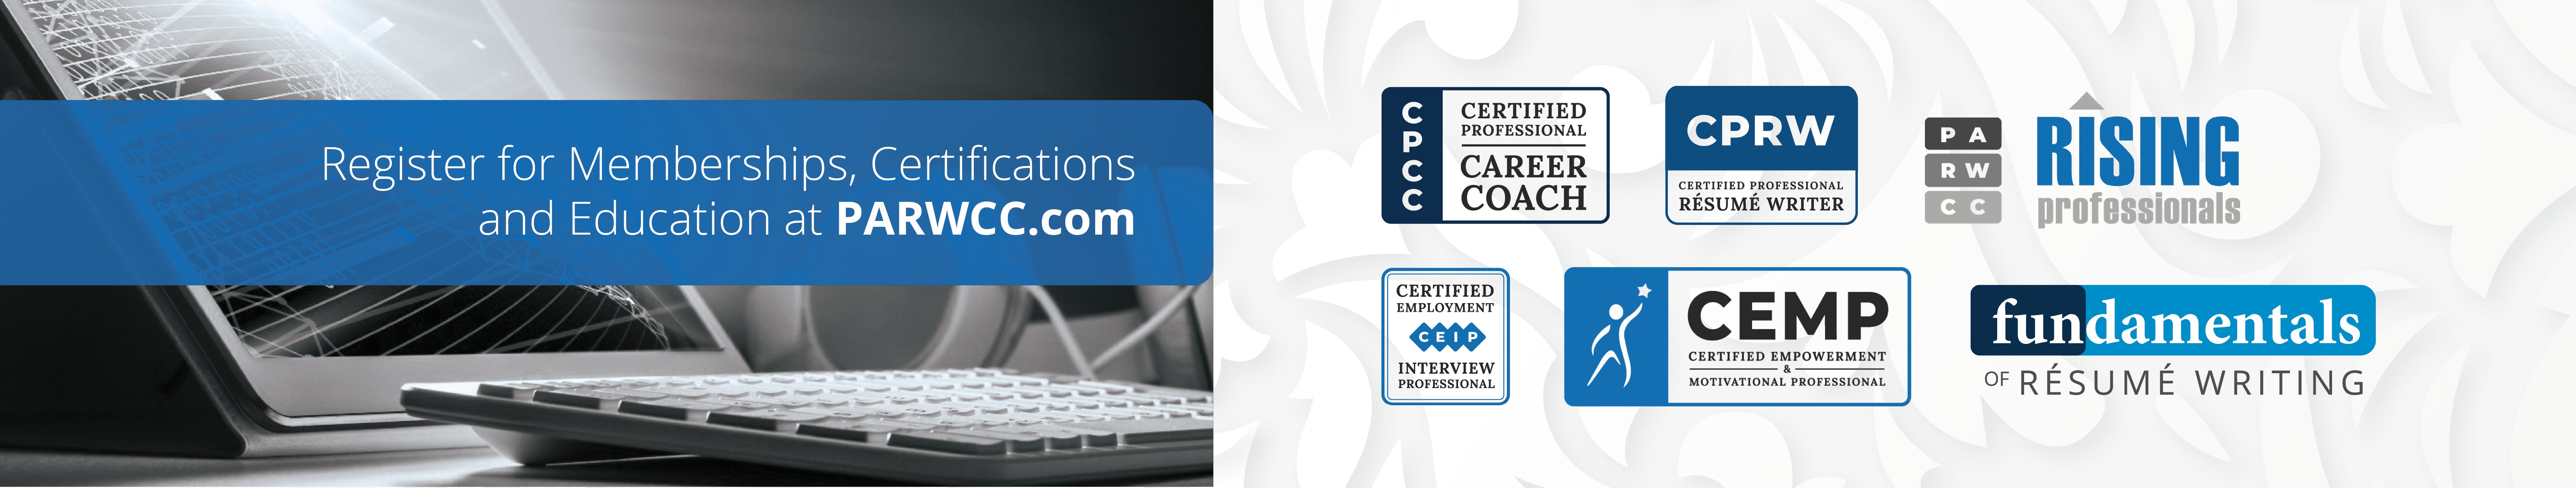 professional association of resume writers and career coaches parcc